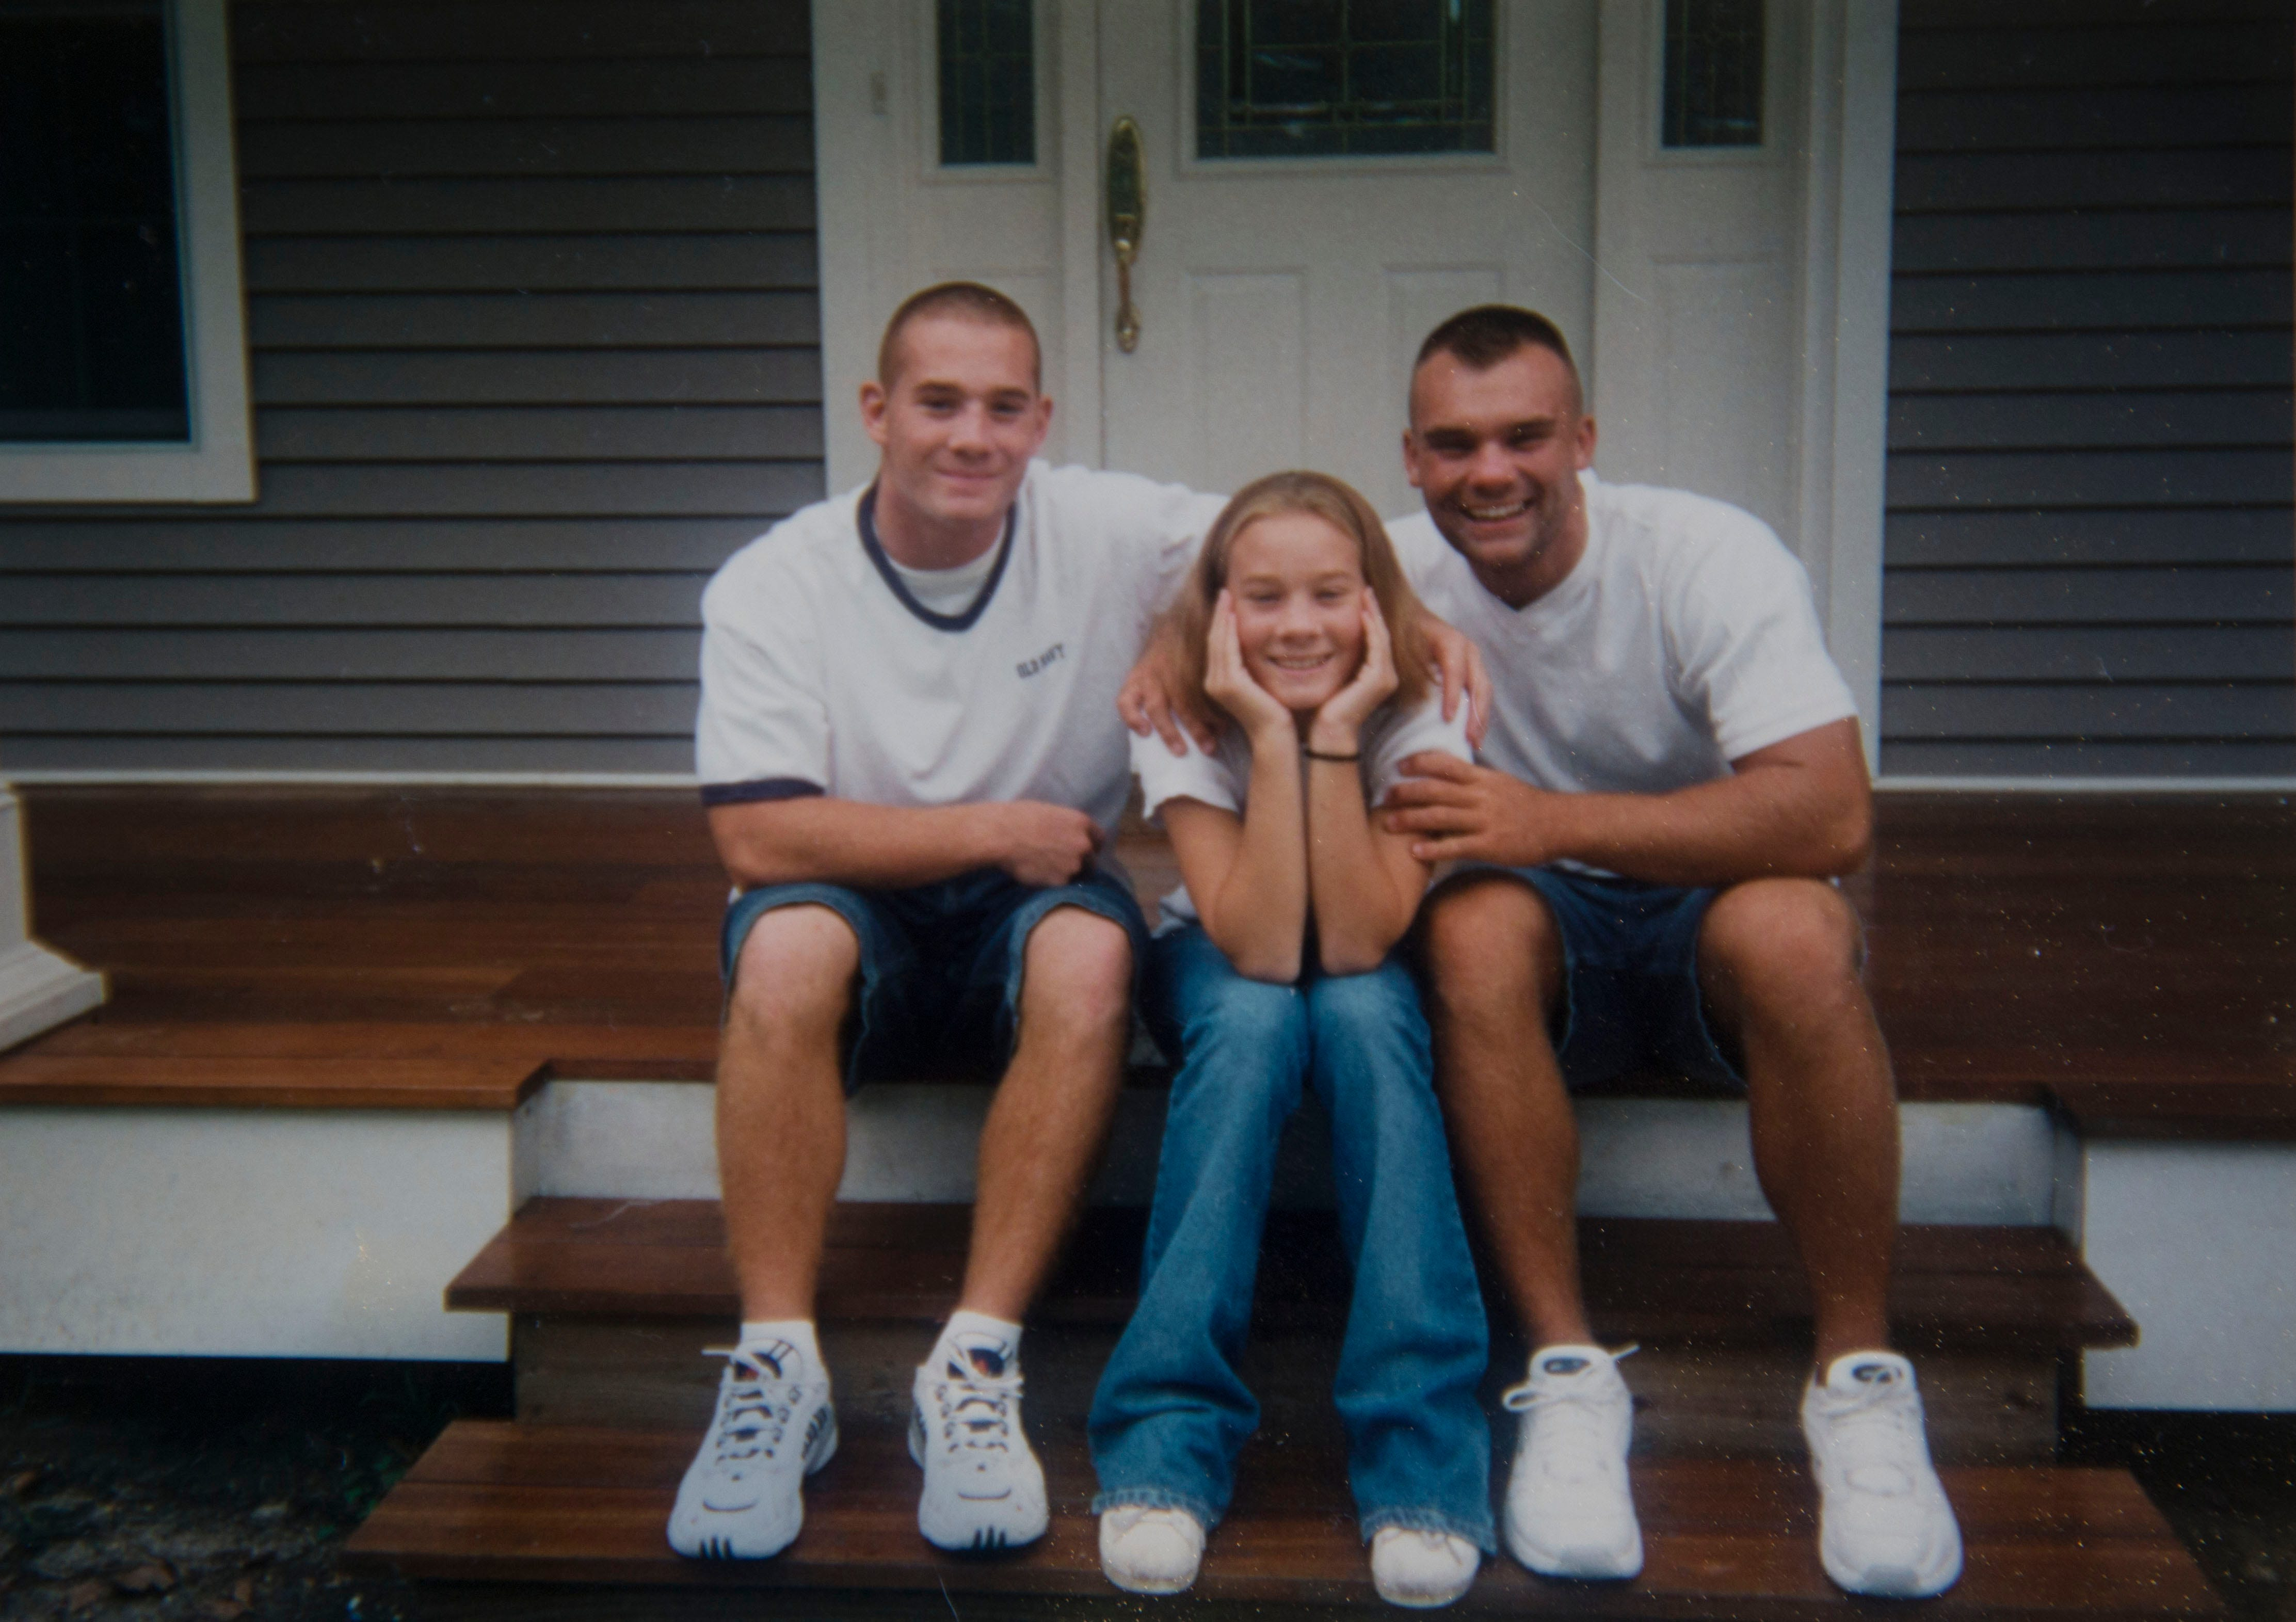 A young Richie Lapinski (left) with his brother and sister in a family photo. All three siblings would battle opioid addiction in the years to come, and are now in recovery.